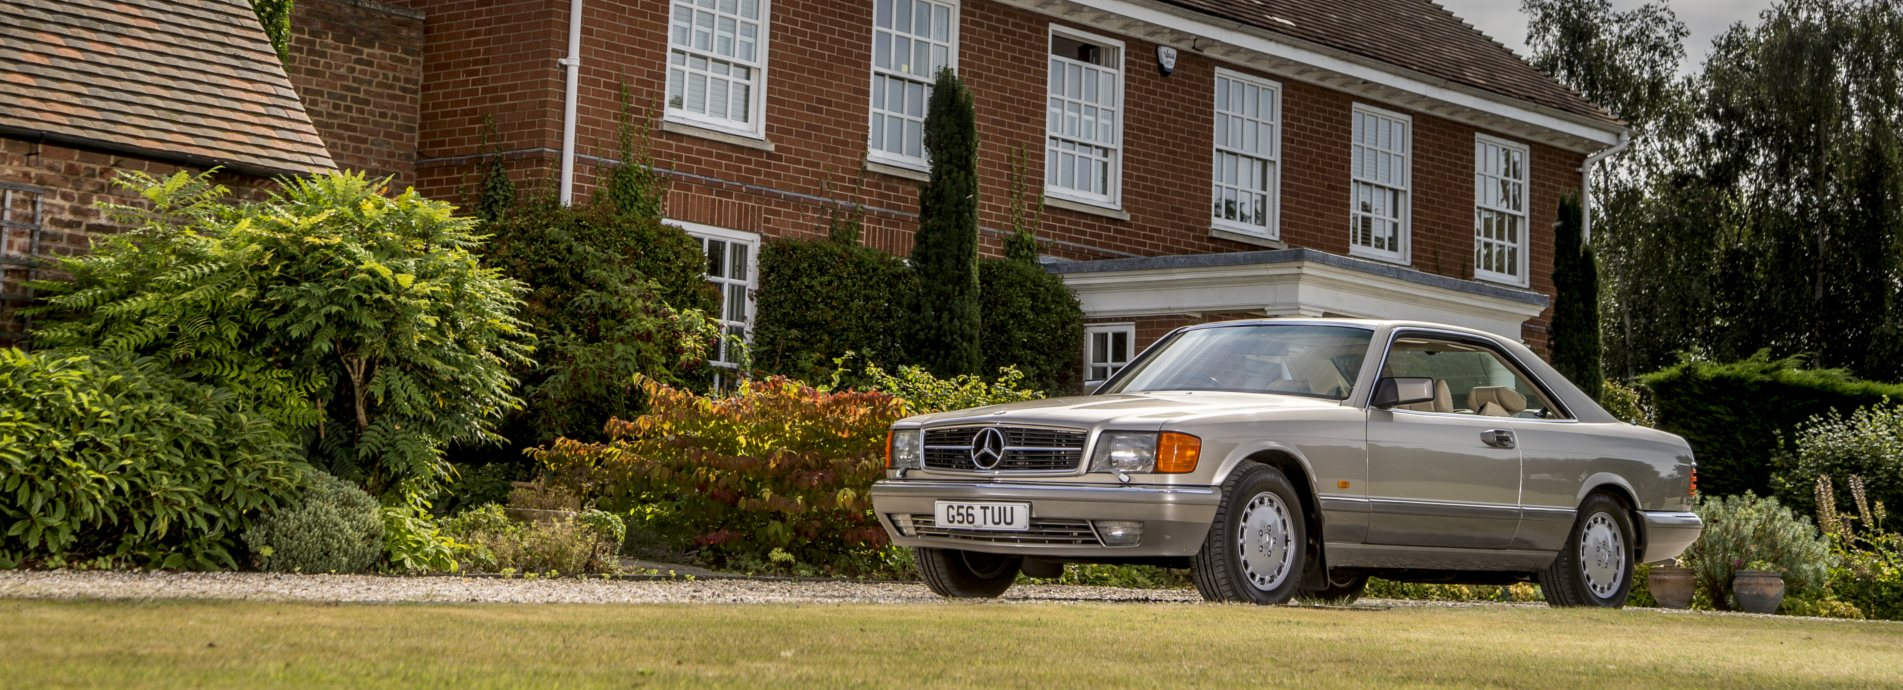 A gold SL Shop Mercedes-Benz R129 parked in front of a house